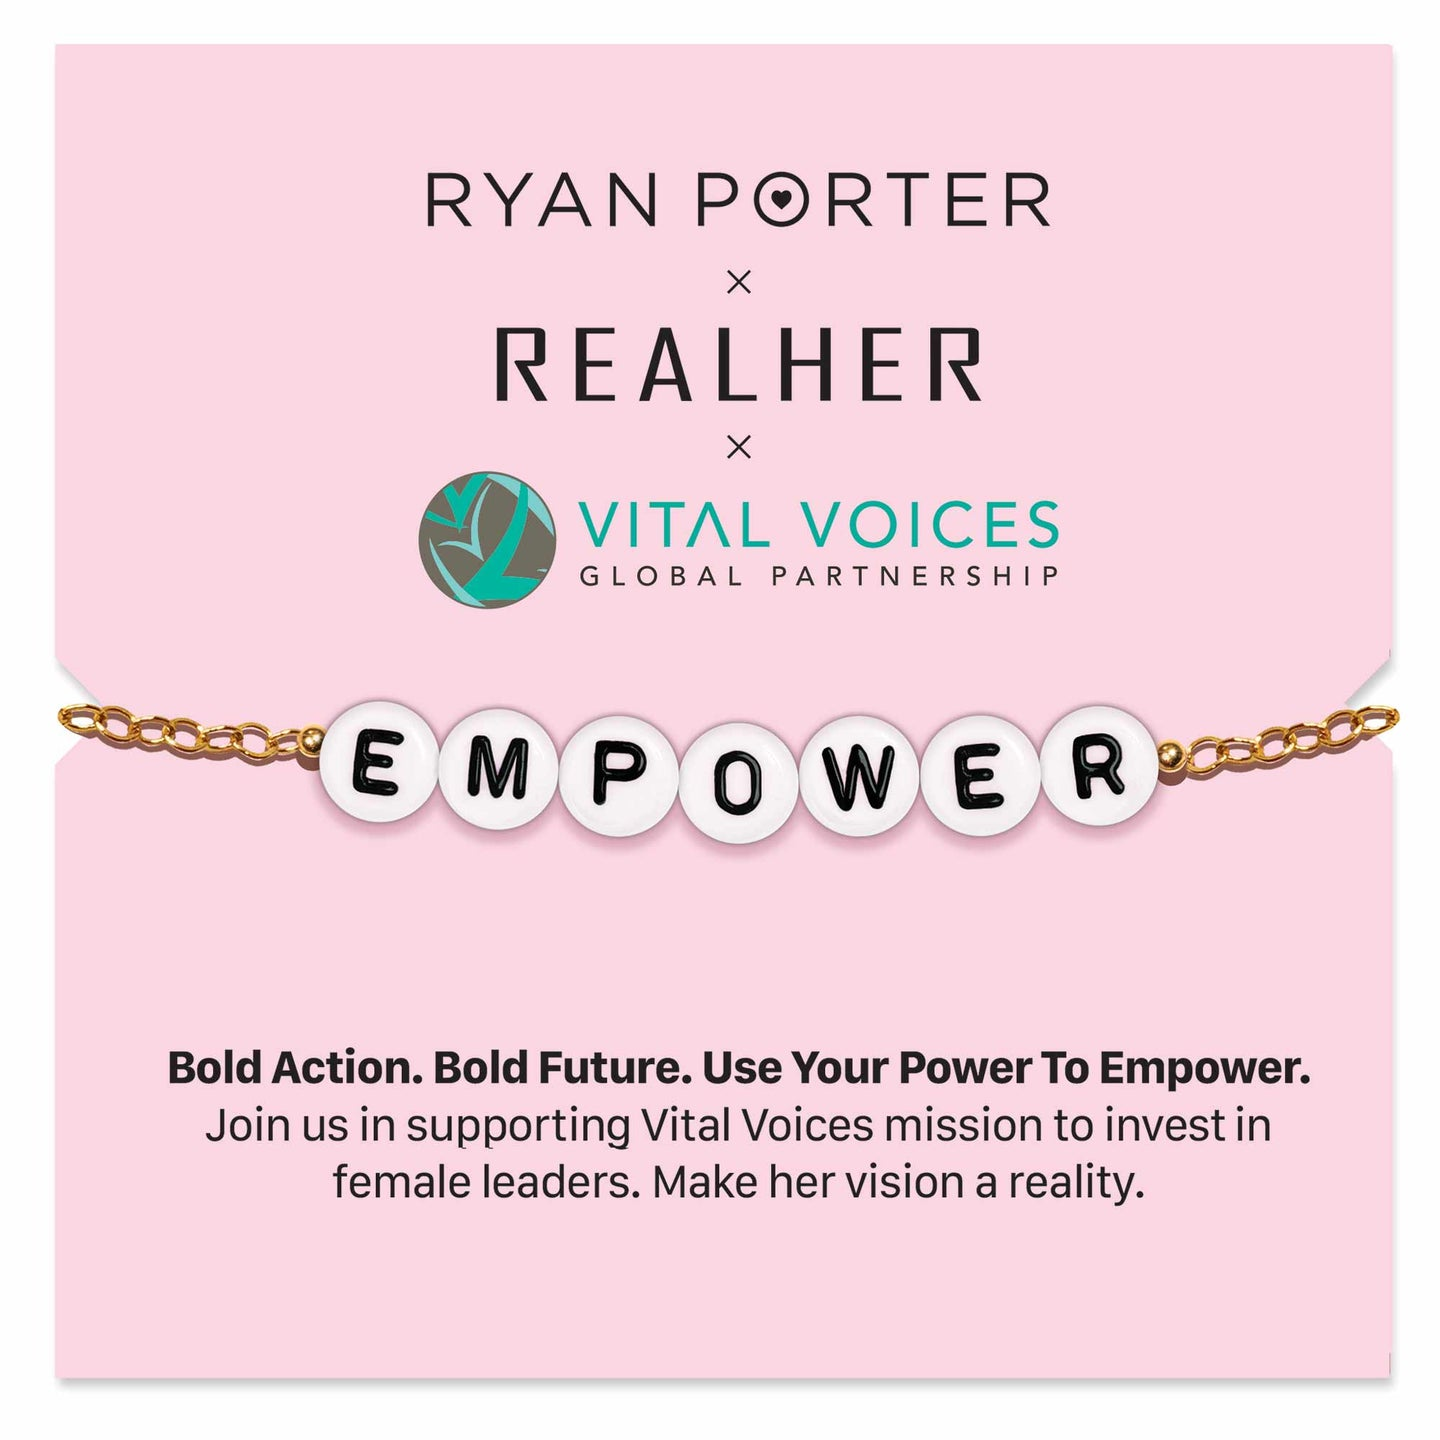 SUPPORT WOMEN - EMPOWER BRACELET